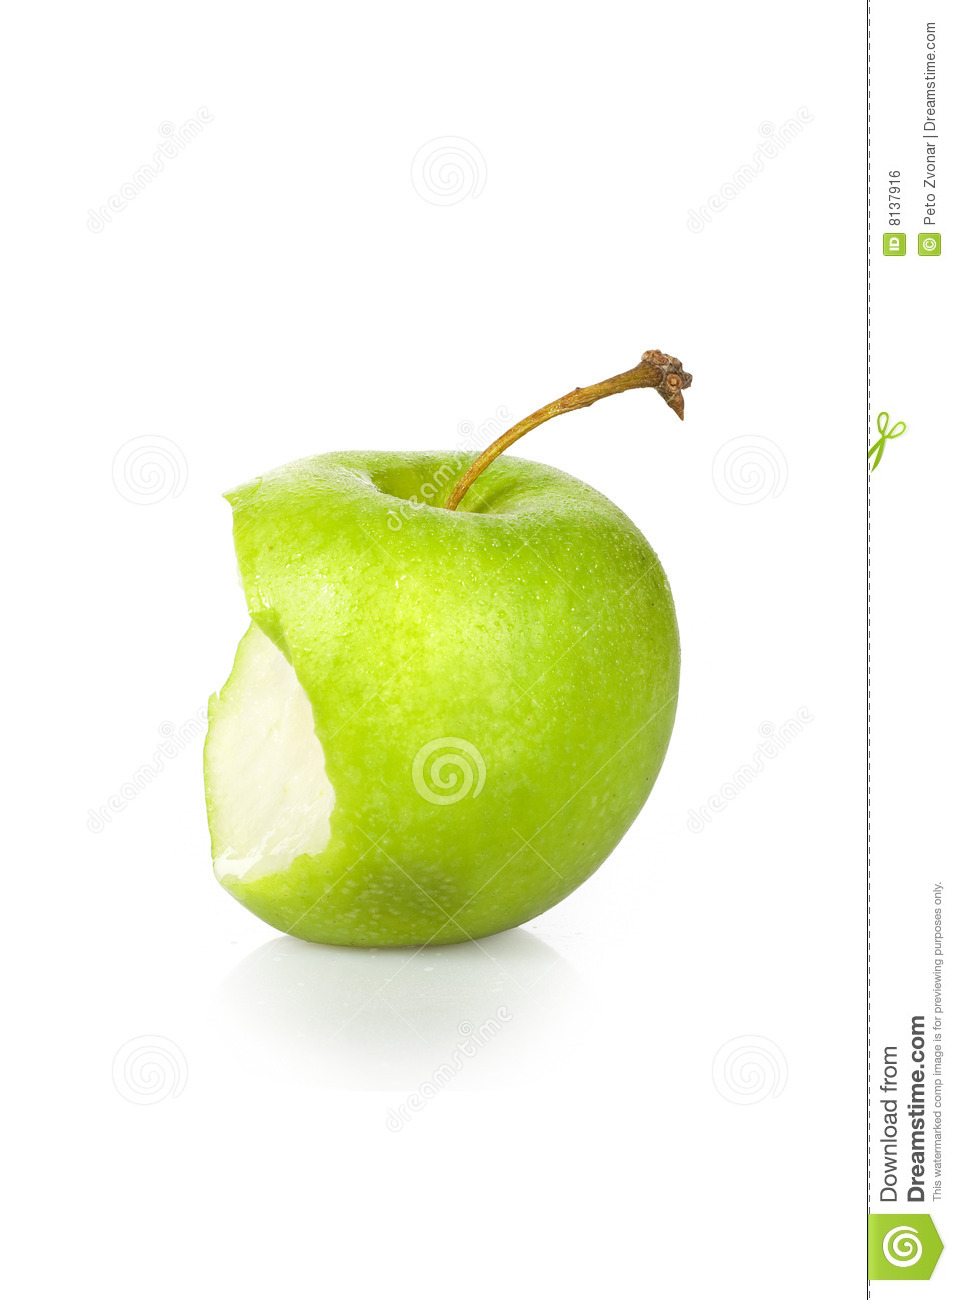 Green Apple Core Royalty Free Stock Image   Image  8137916